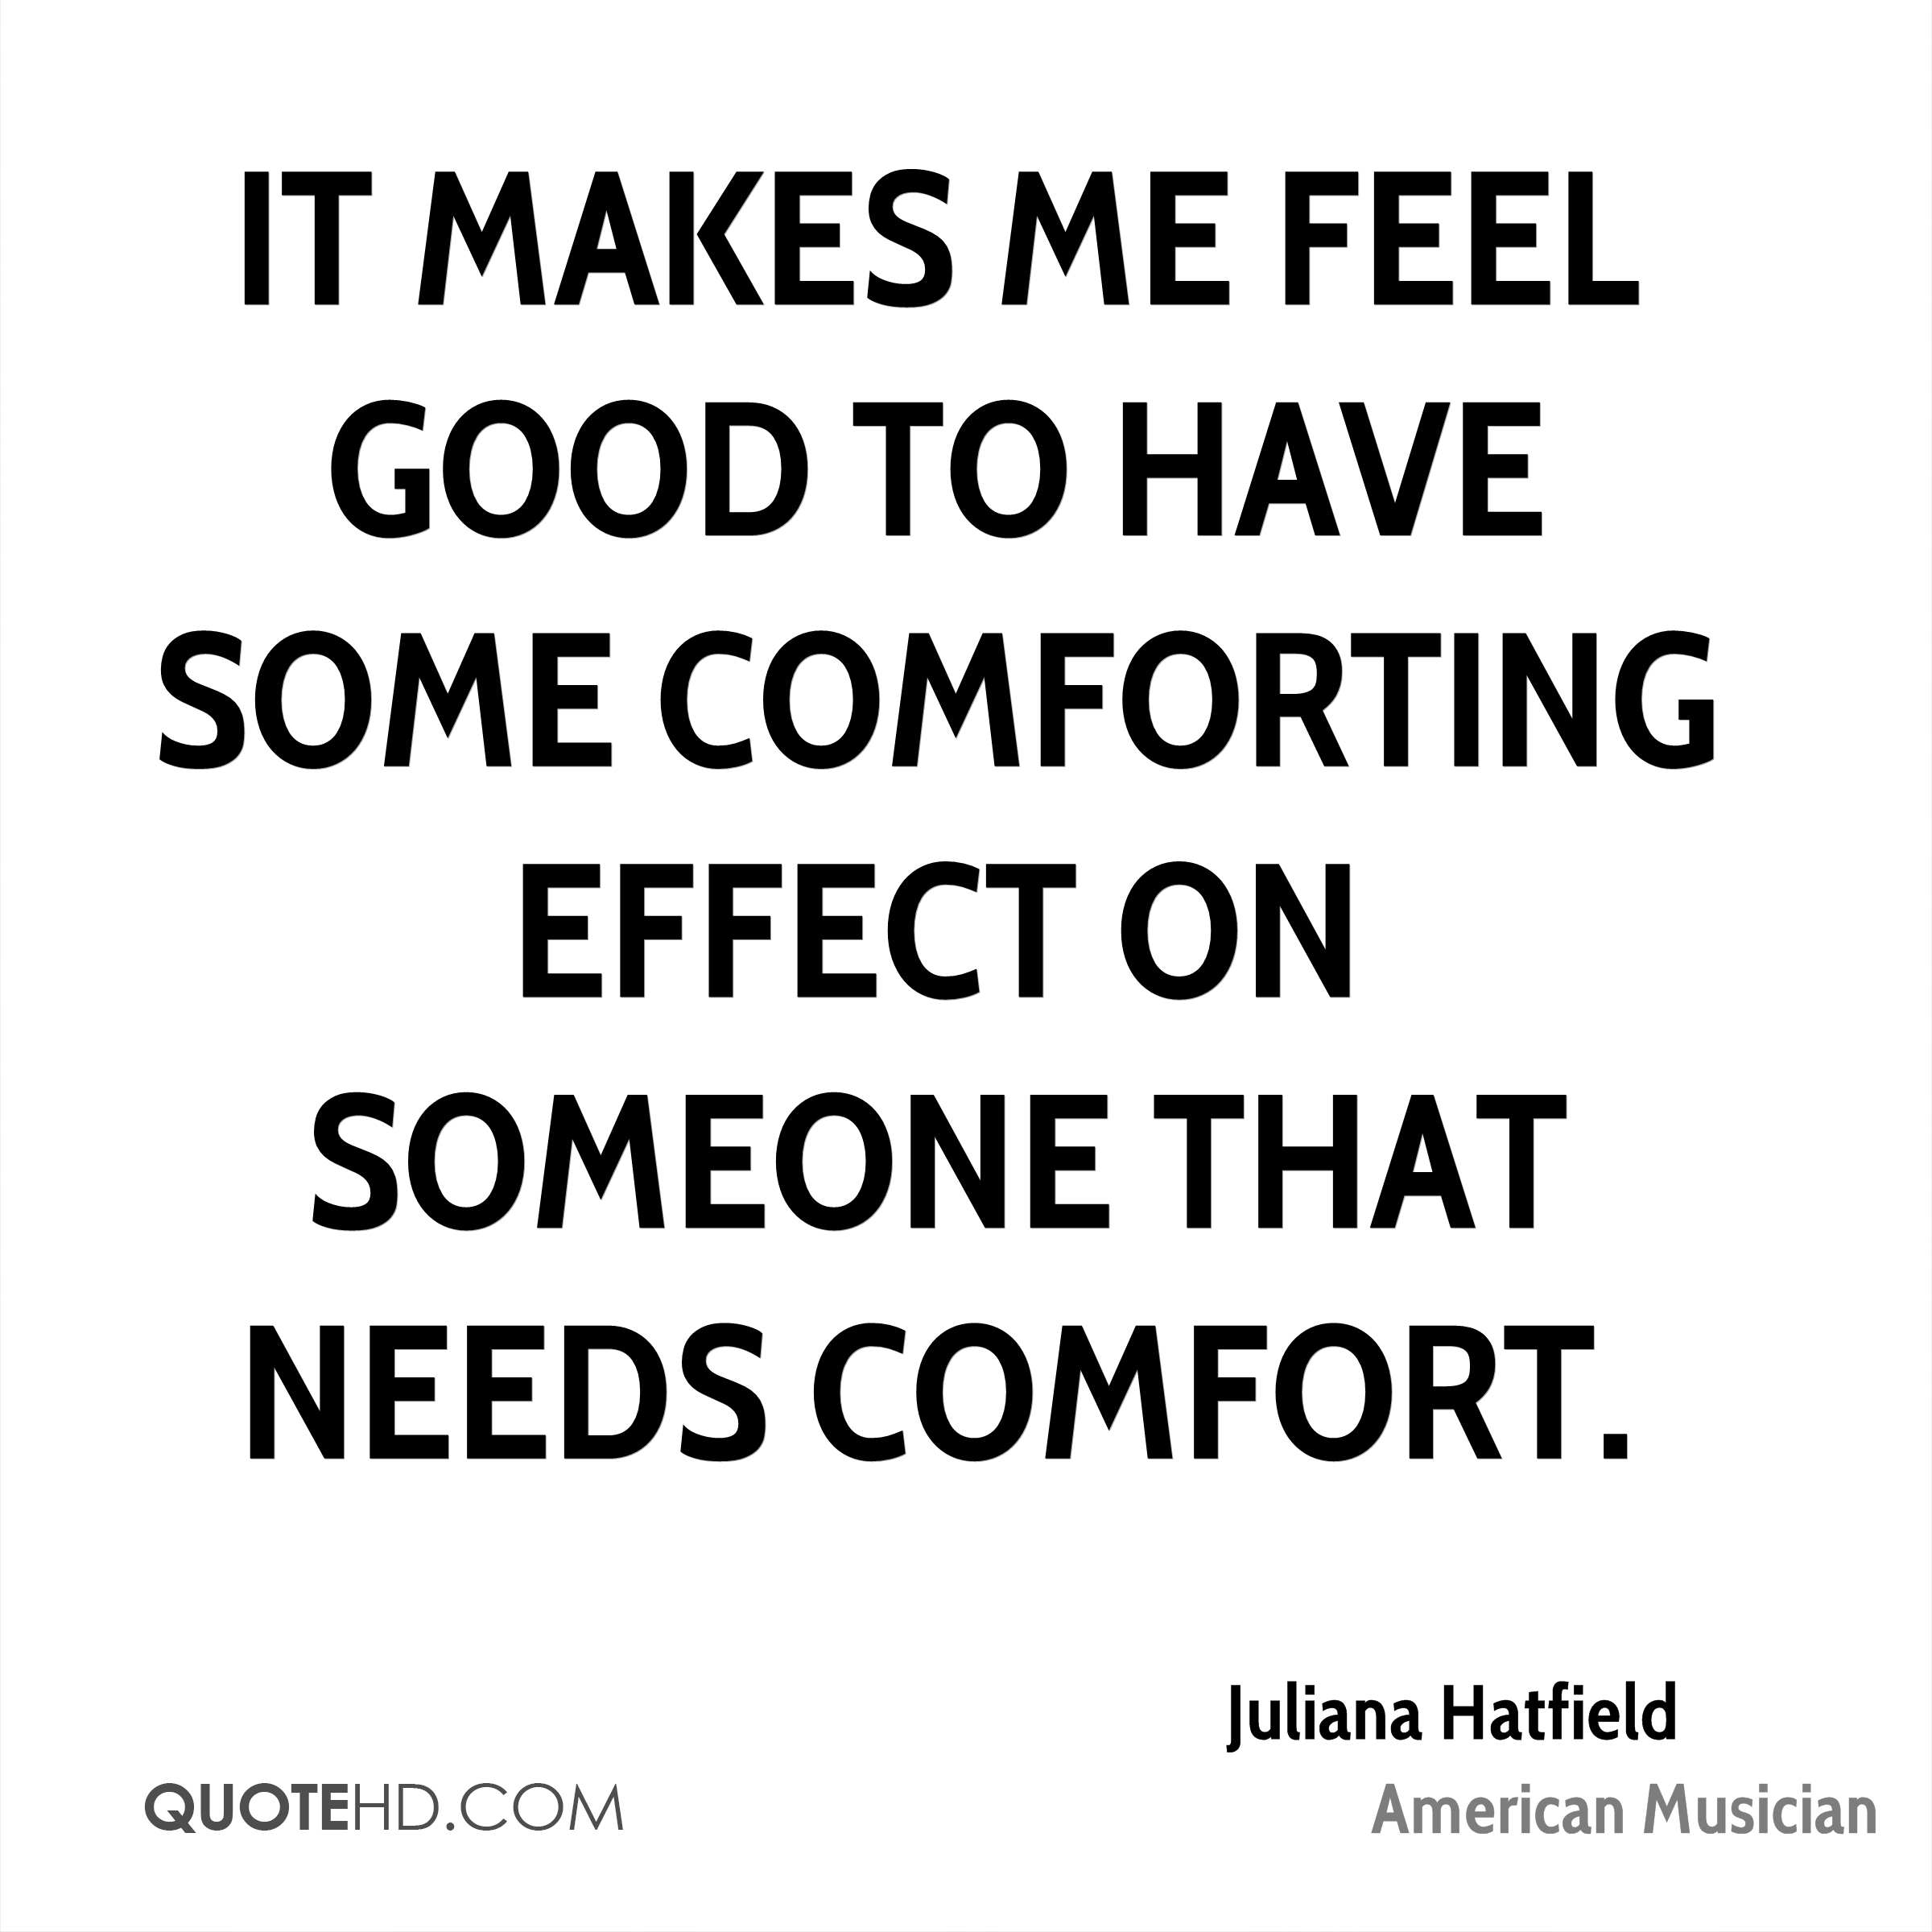 Comforting Quotes Juliana Hatfield Quotes  Quotehd